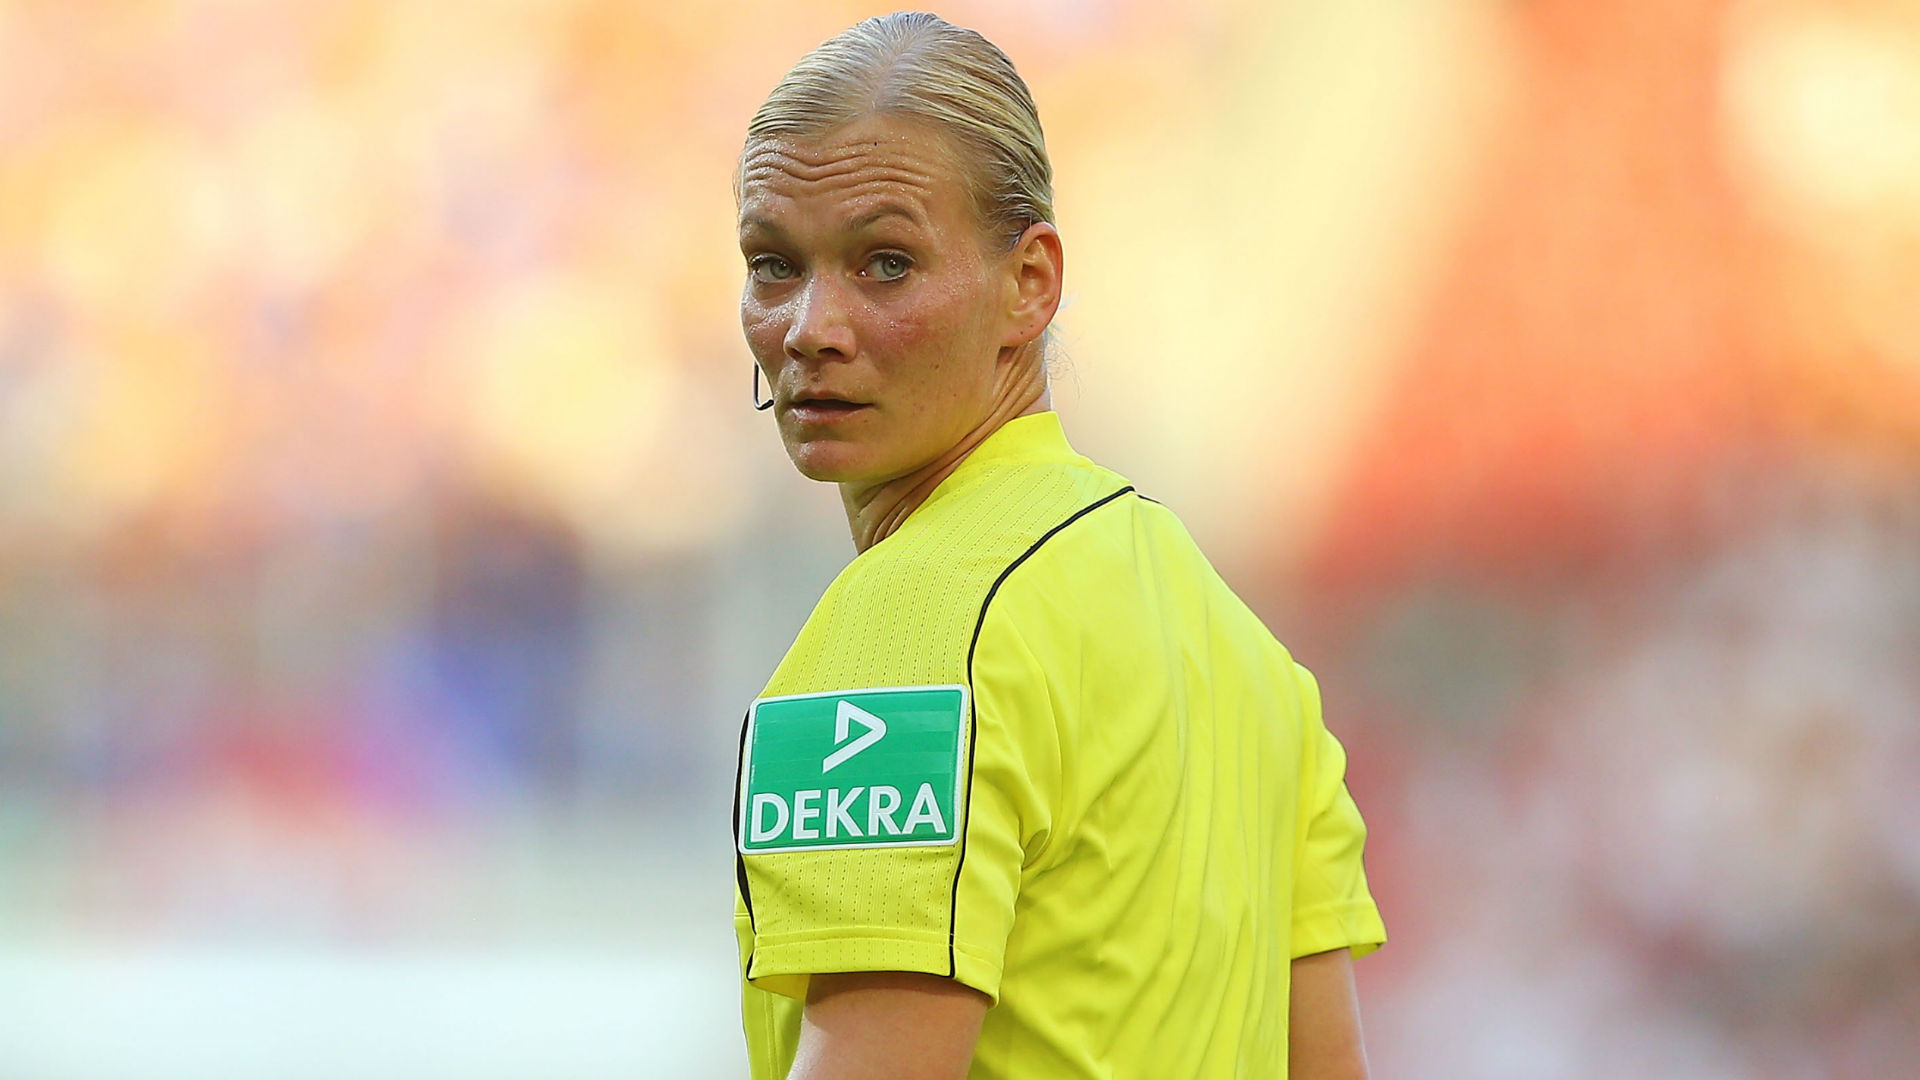 Steinhaus promoted as first female referee in Bundesliga